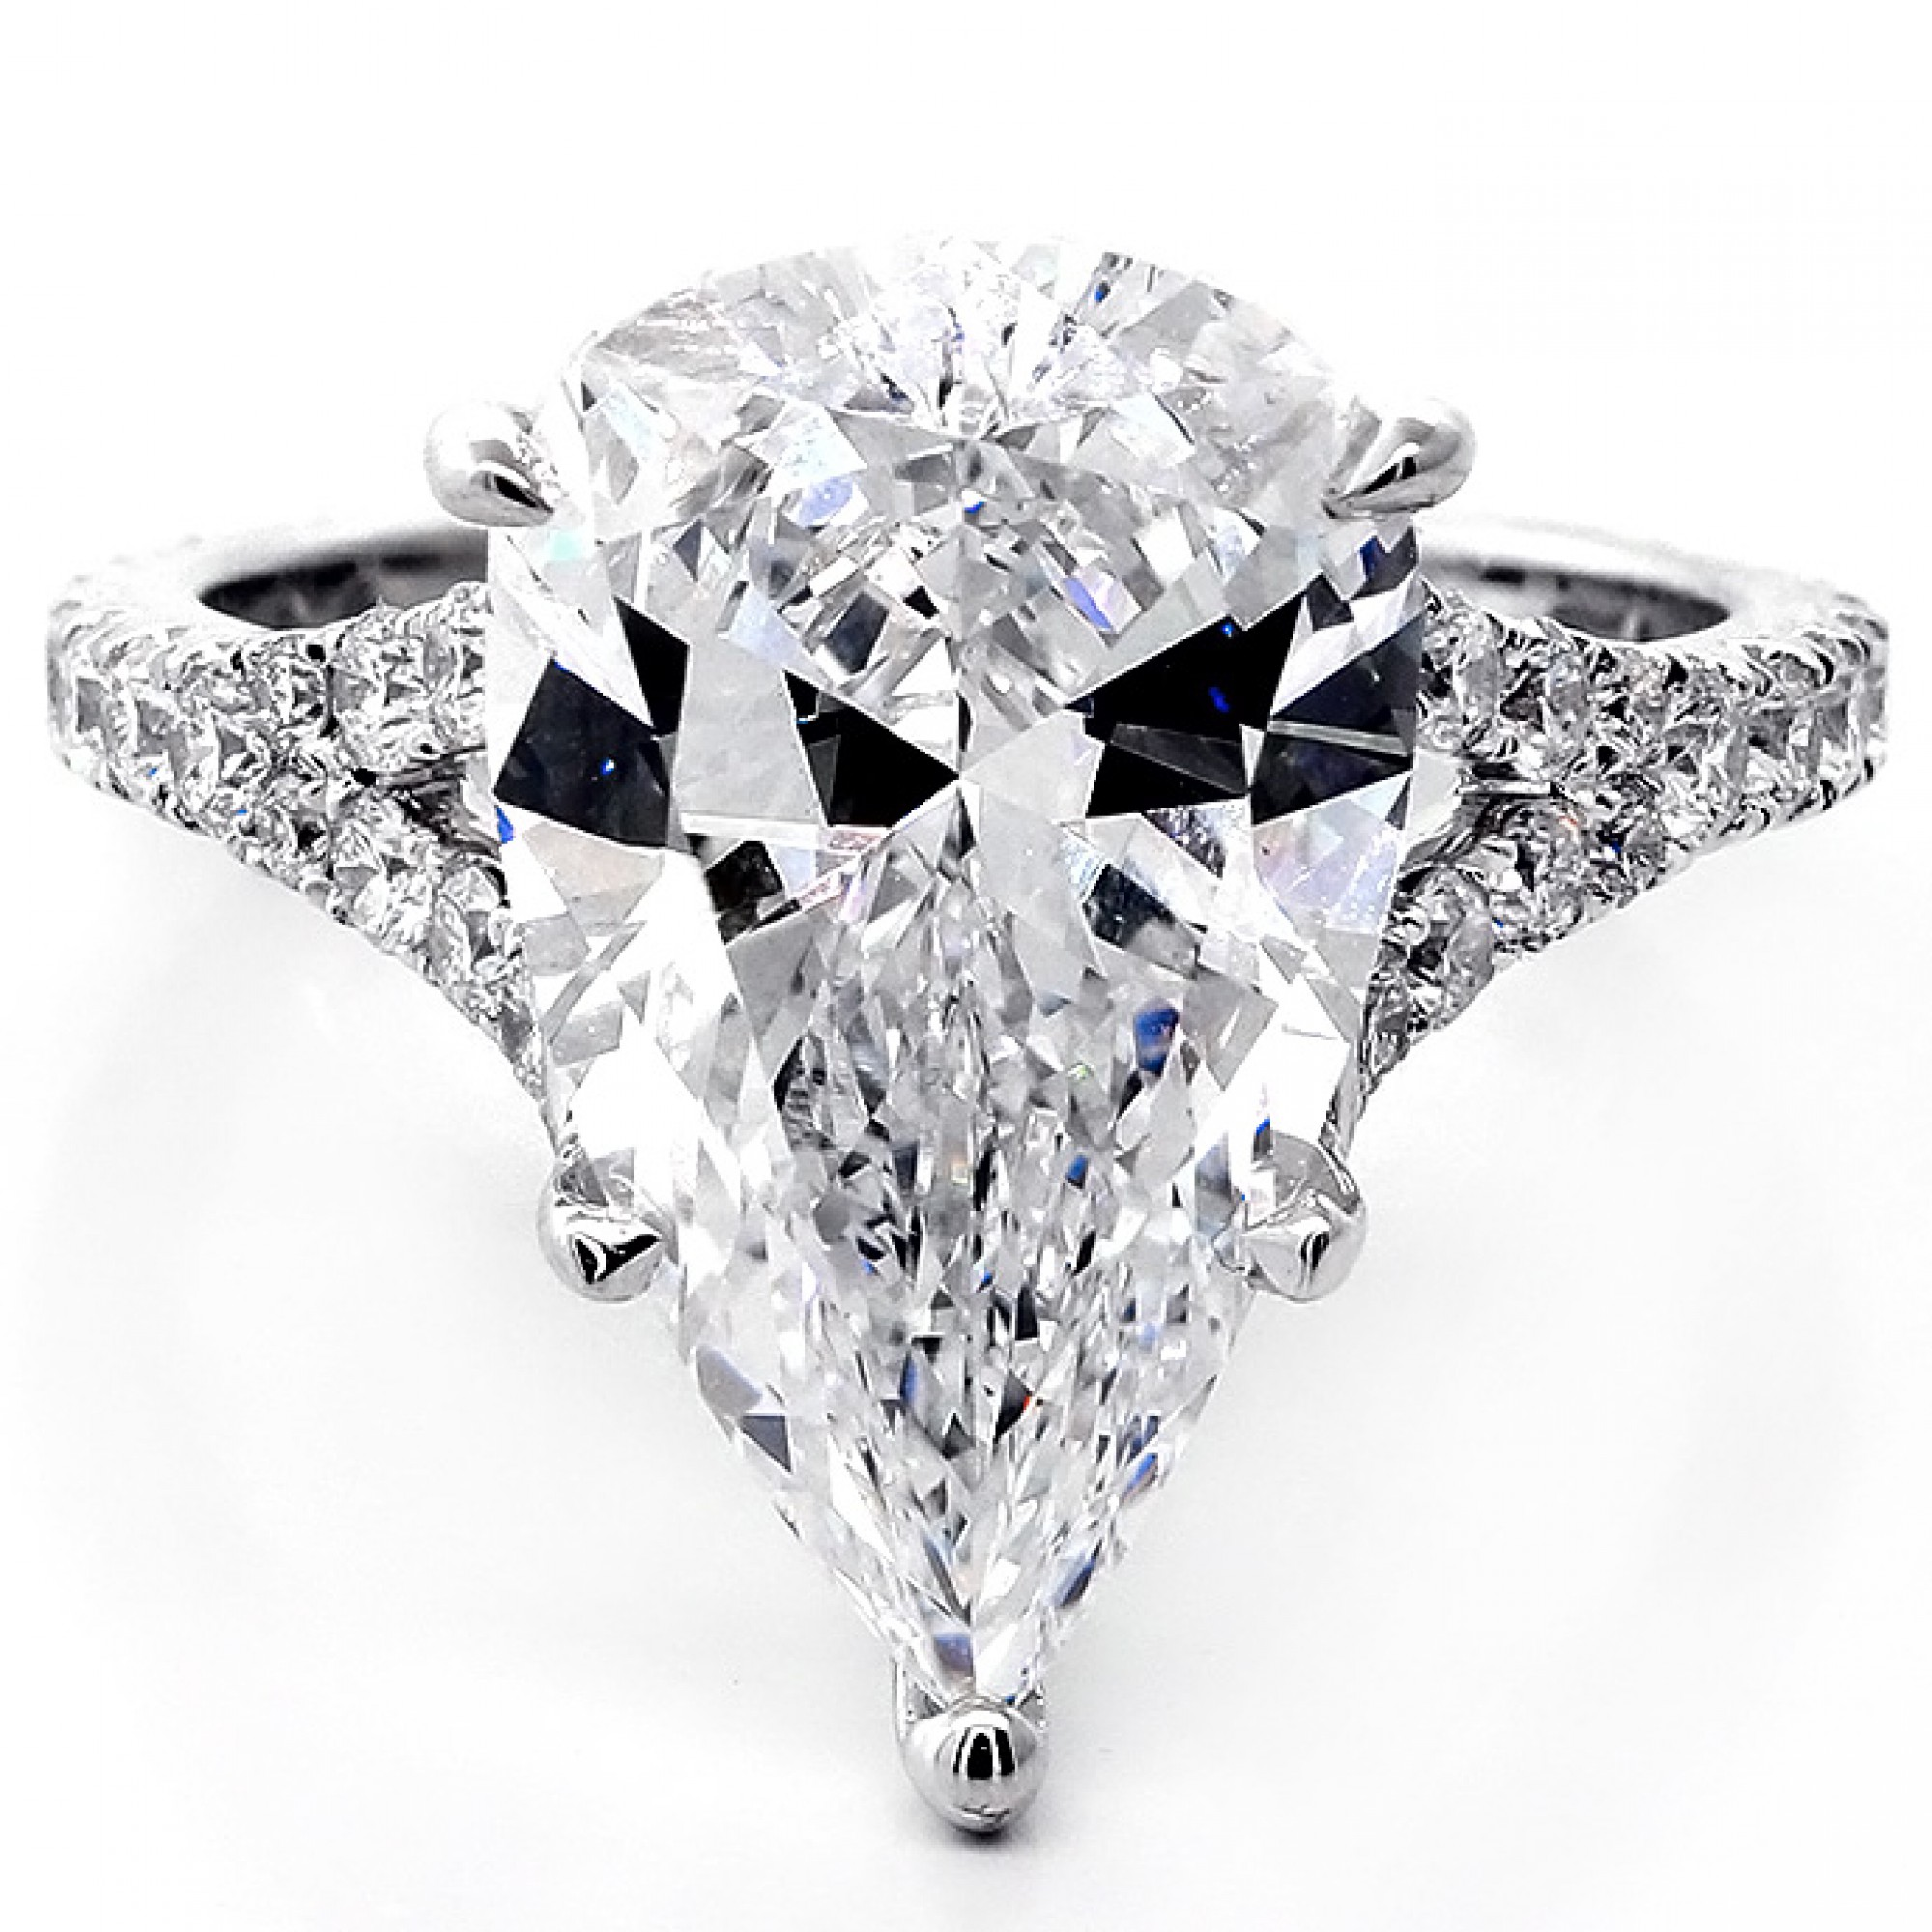 6 83 Cts Pear Shape Diamond Engagement Ring Set In 18k White Gold